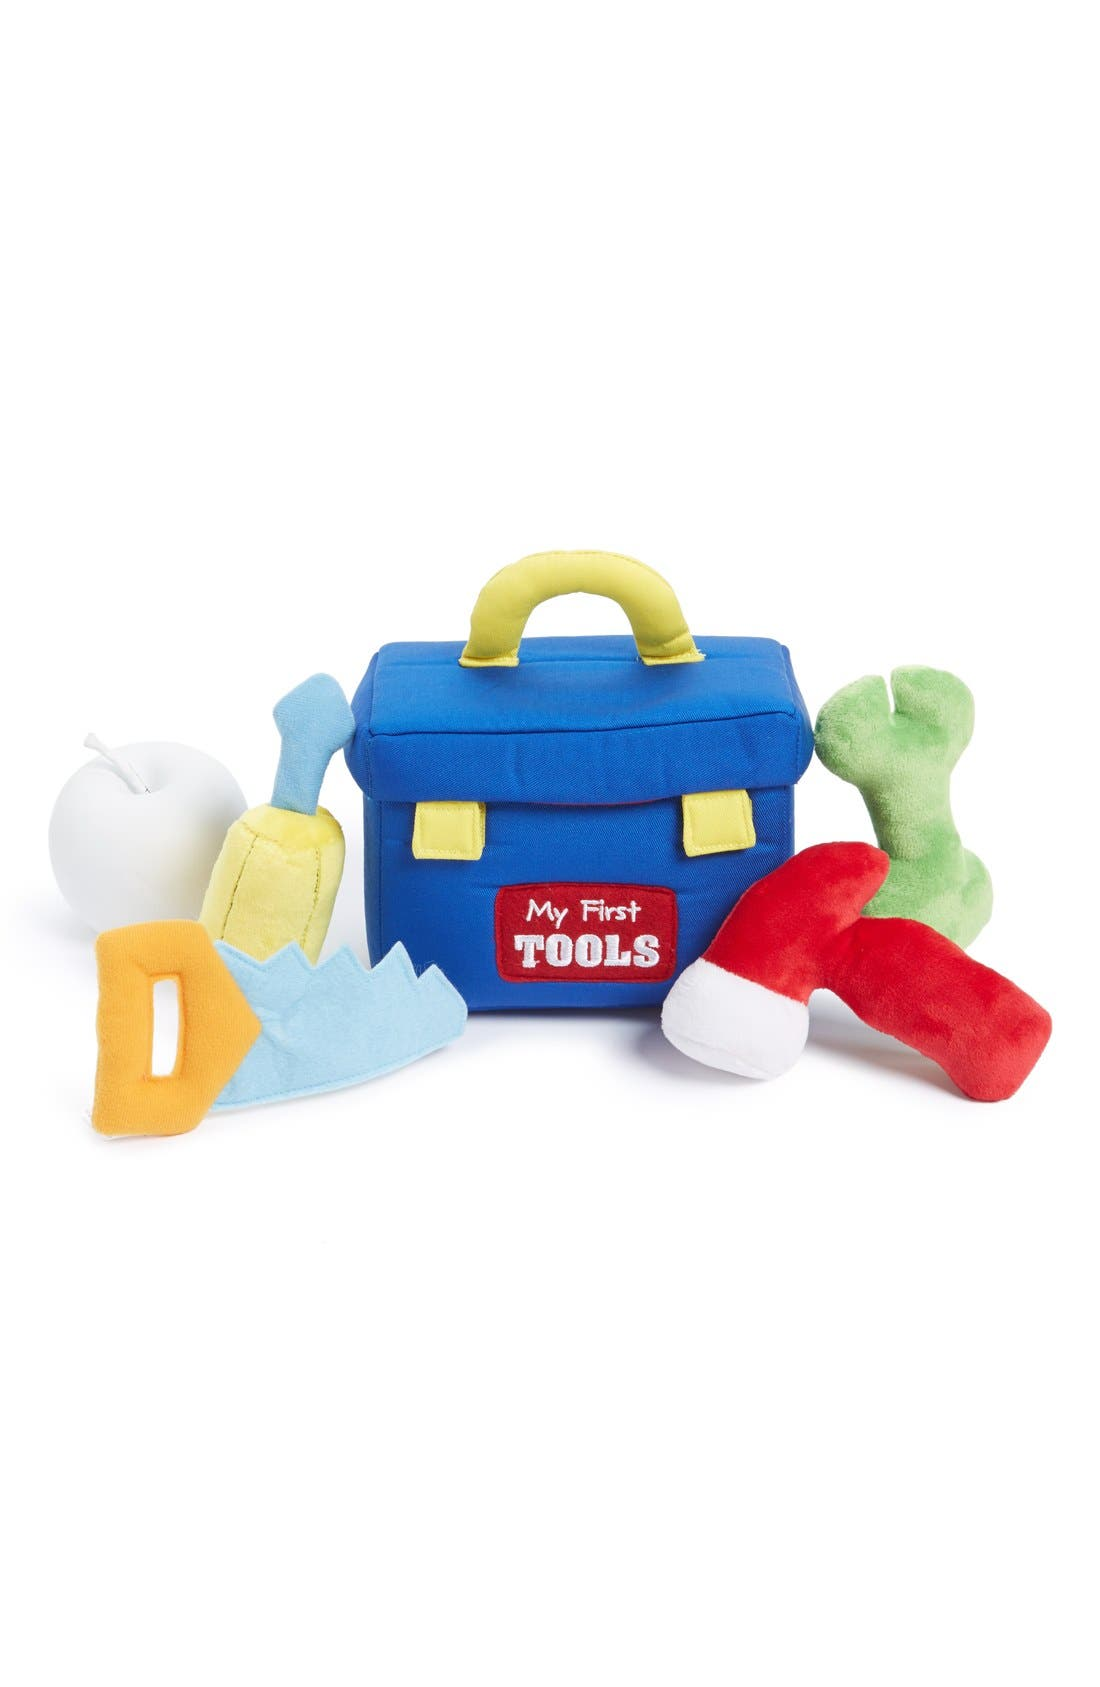 Gund 'My First Toolbox' Plush Play Set